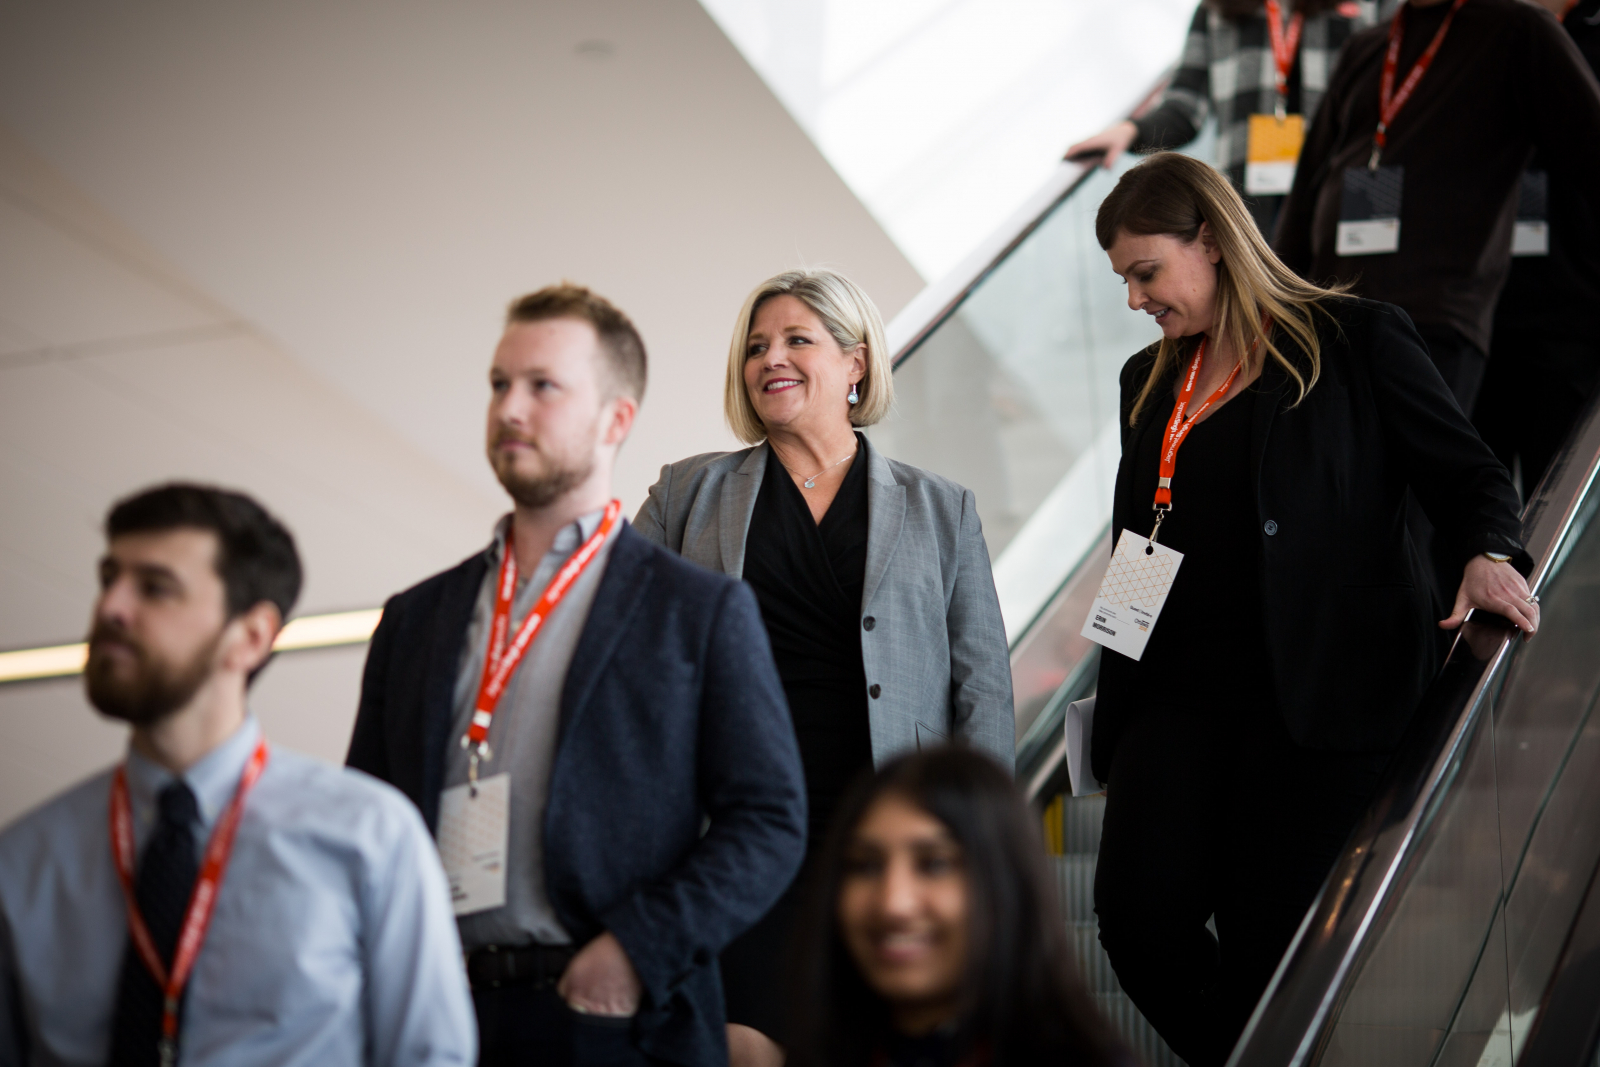 Ontario NDP leader Andrea Horwath heads to a press conference at the Shaw Conference Centre in Ottawa on Feb. 17, 2018 during the NDP's convention. Photo by Alex Tétreault